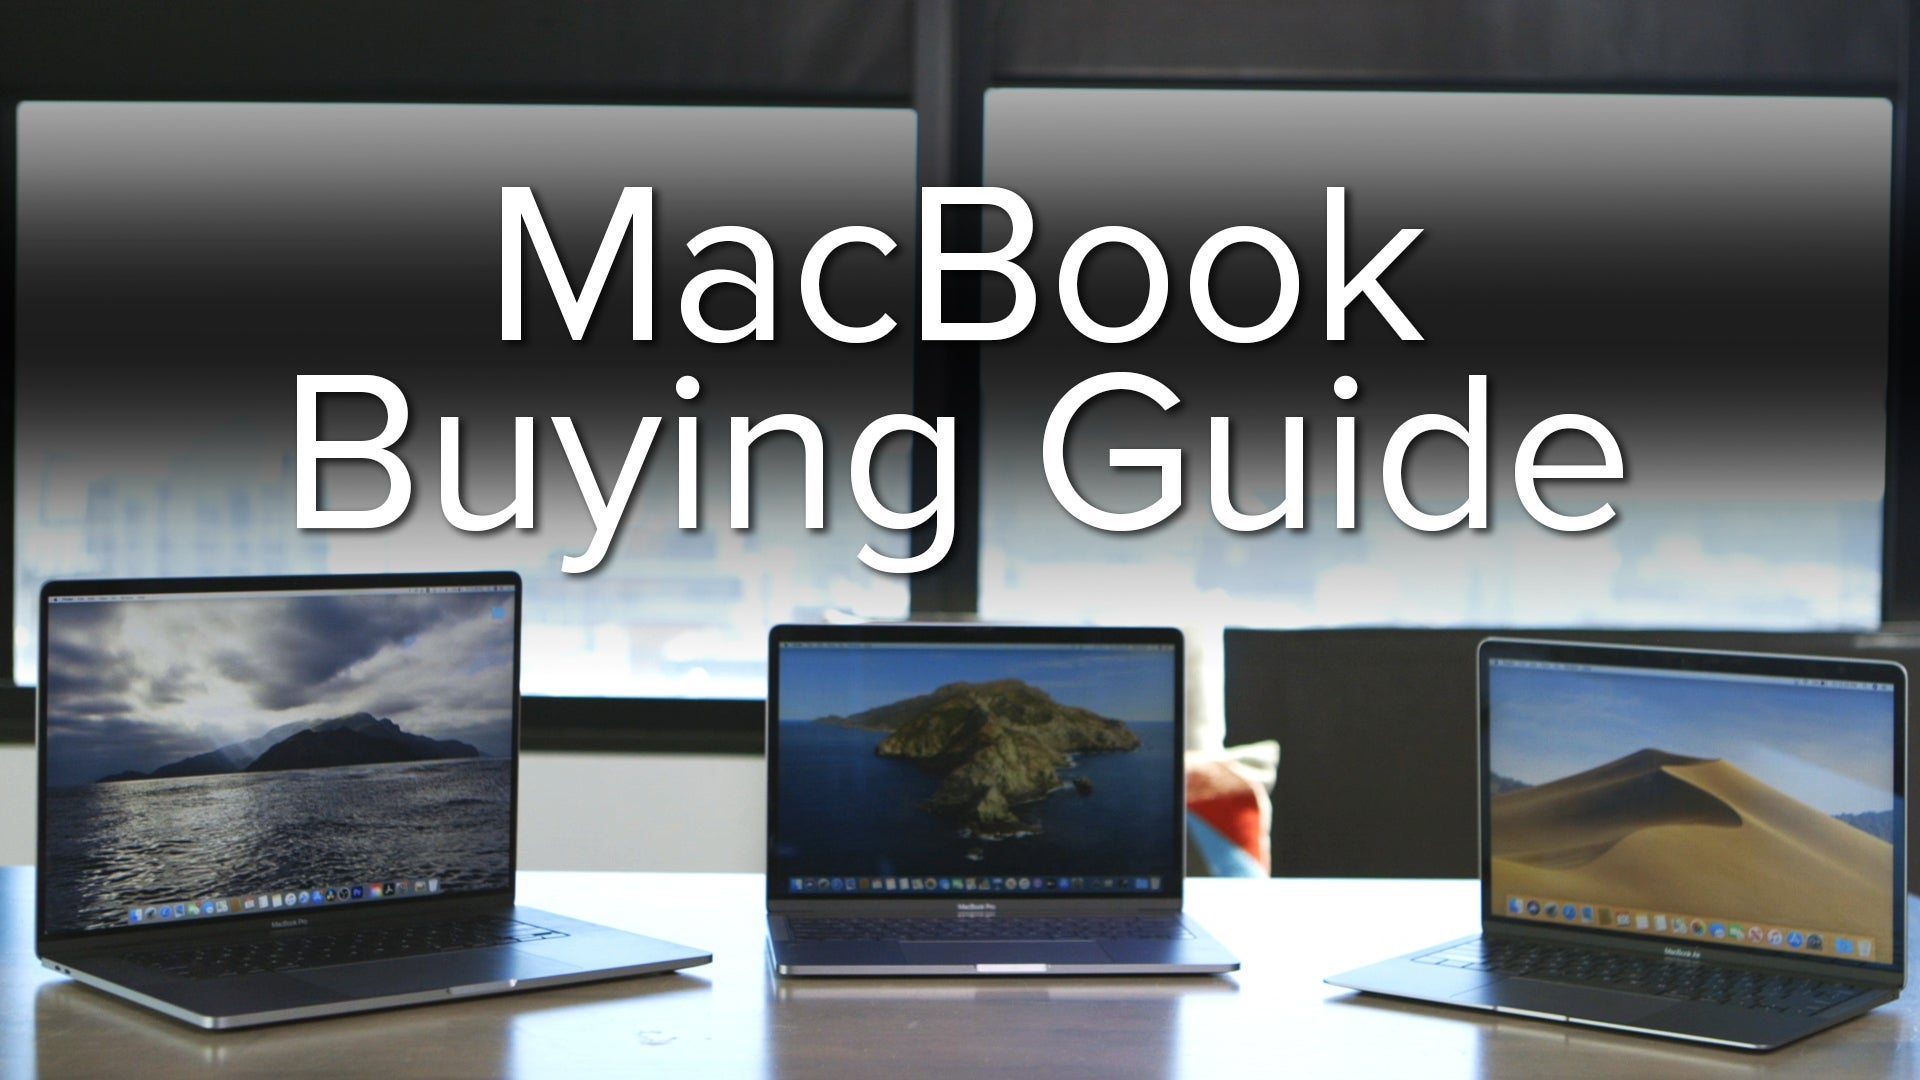 mls20 029 macbookbuyersguide v2